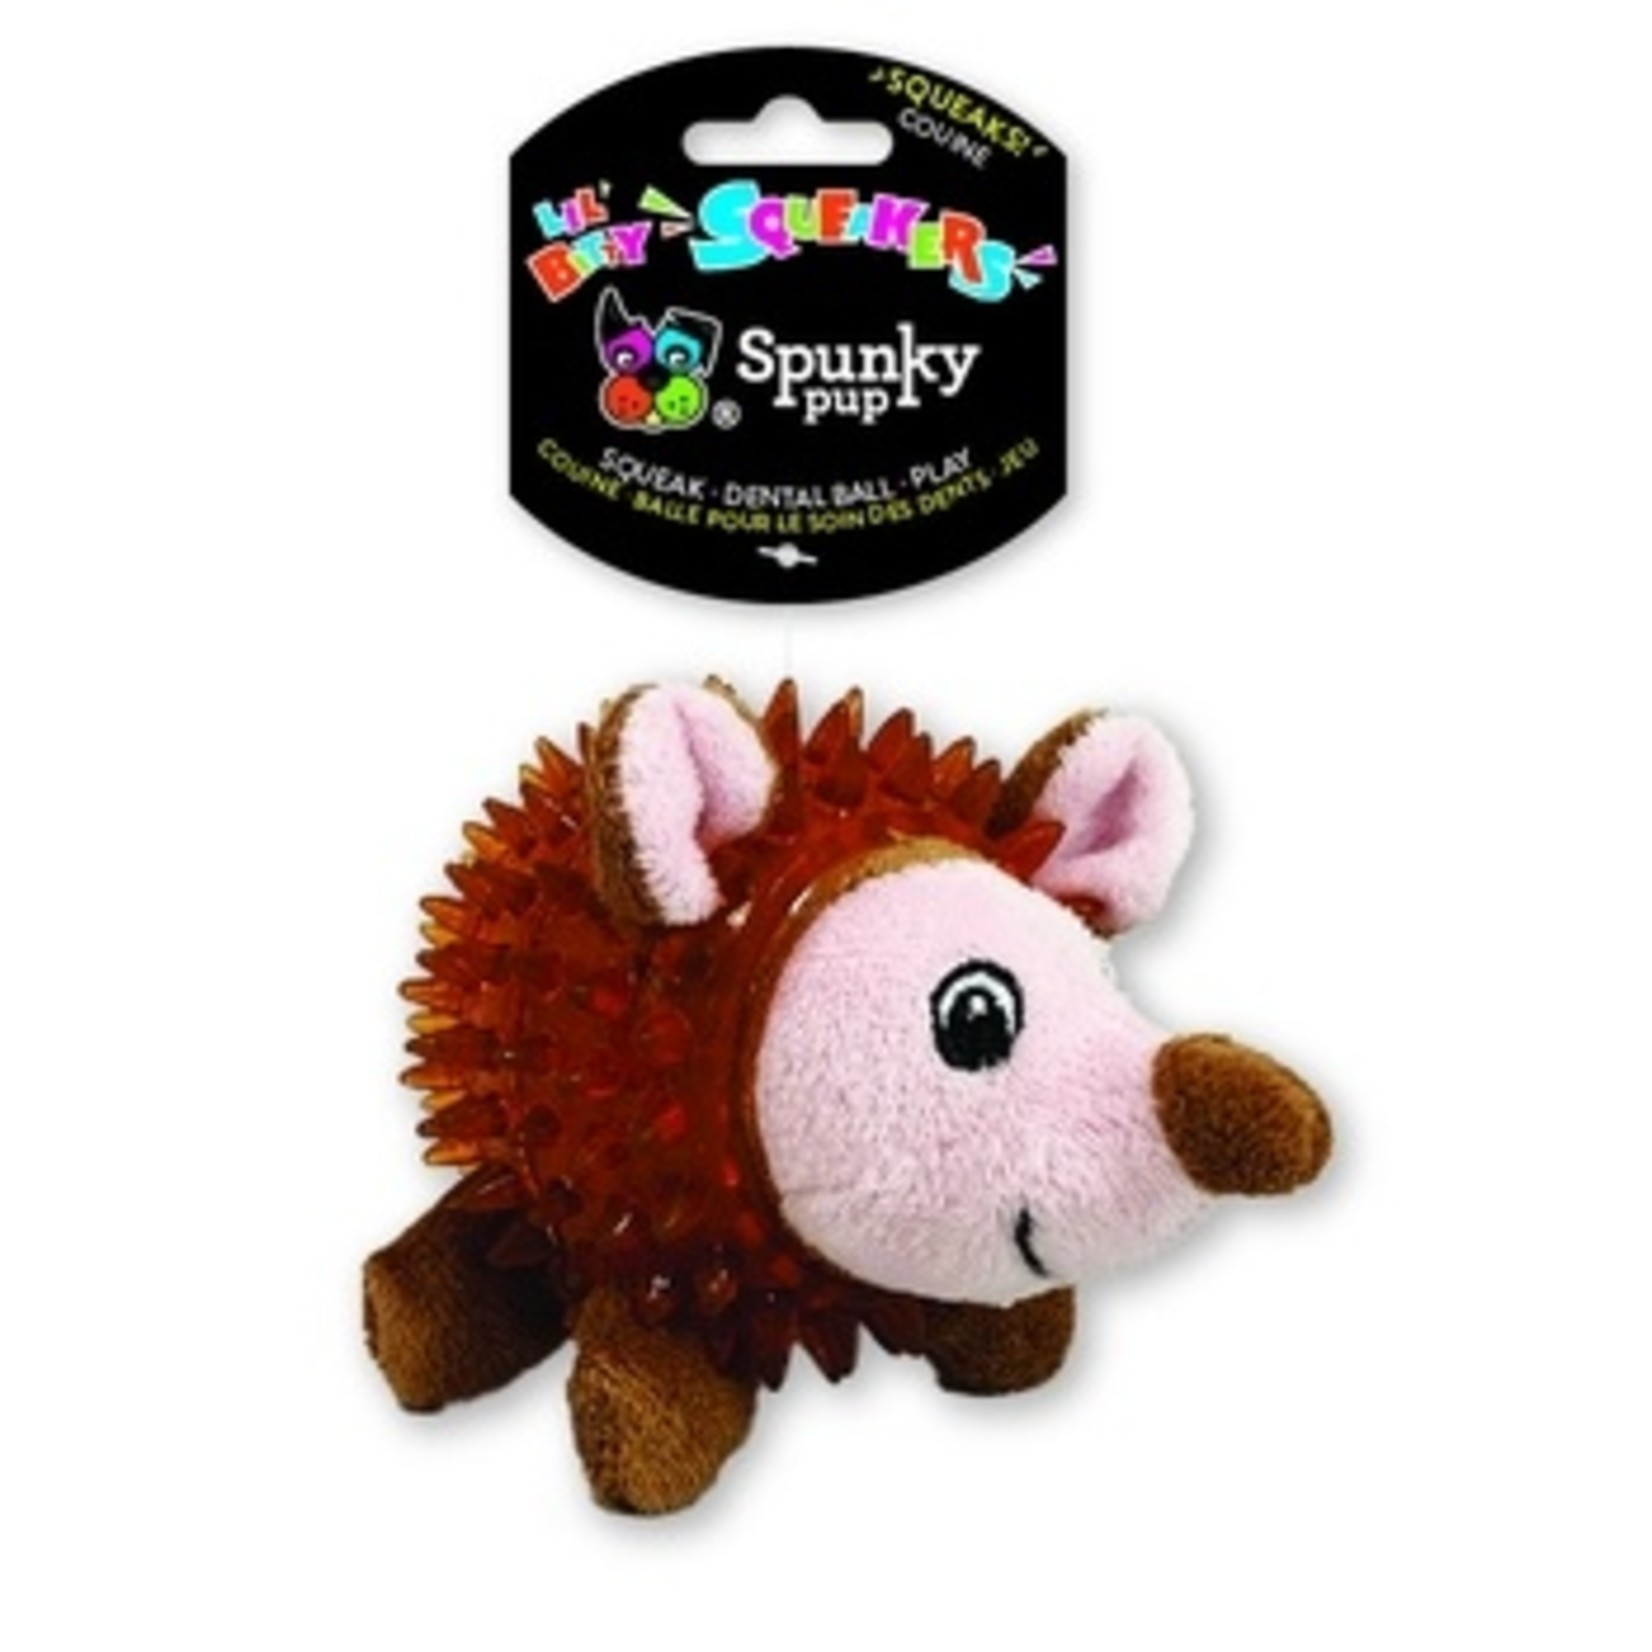 Spunky Pup Spunkypup Lil Bitty Squeakers Hedgehog Dog Toy